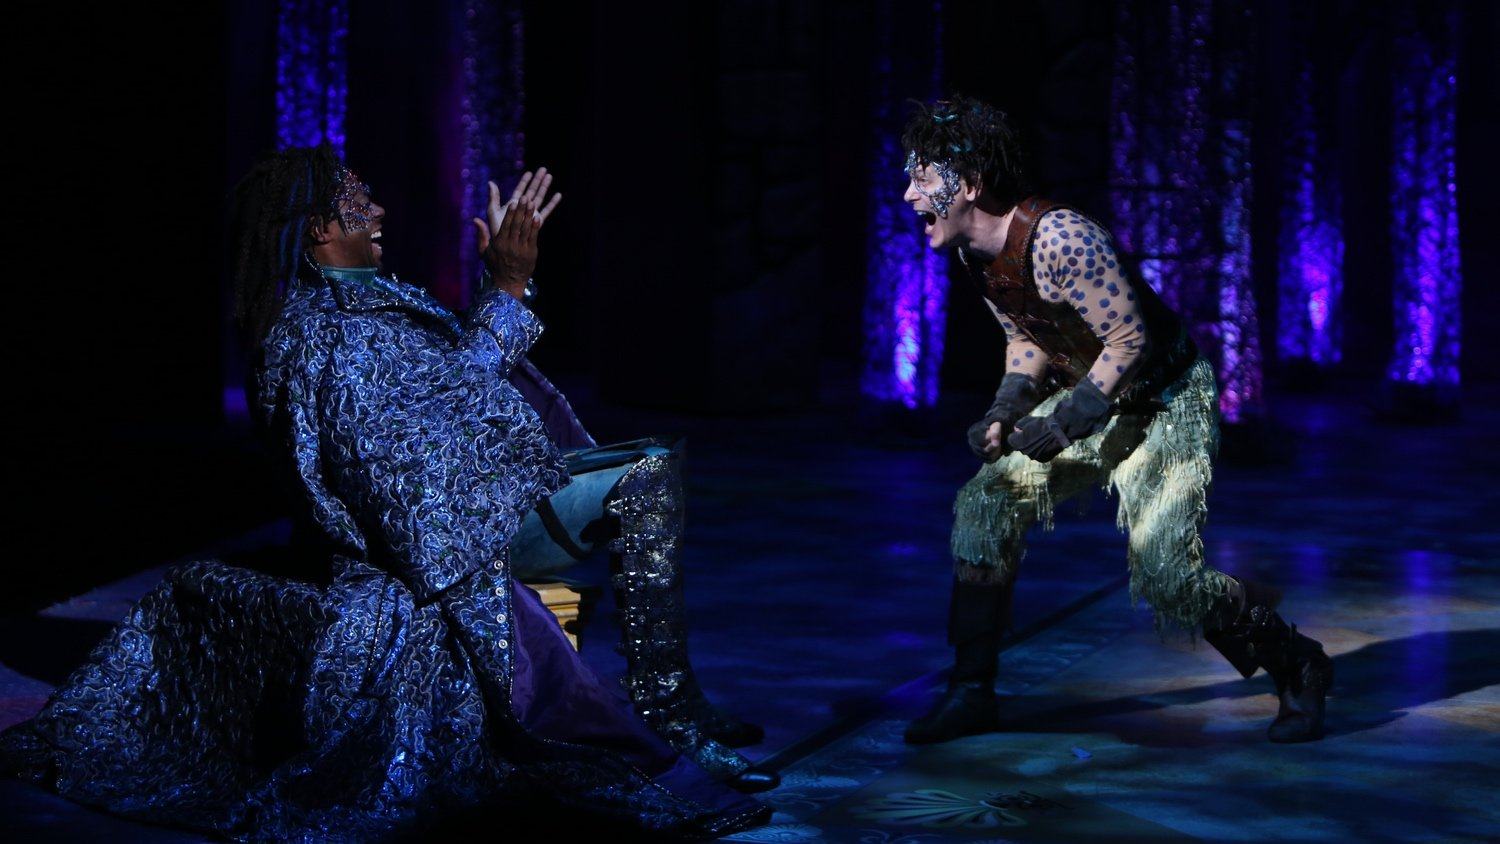 Alvin Keith, Jim PoulosA Midsummer Night's Dream at Repertory Theatre of St. Louis 2014: Director: Paul Barnes, Set Design: James Kronzer, Costume Design: Susan Branch Towne, Lighting Design: Lonnie Rafael Alcaraz, Choreographer: Matt Williams, All Photos: ©Photo by Jerry Naunheim Jr.